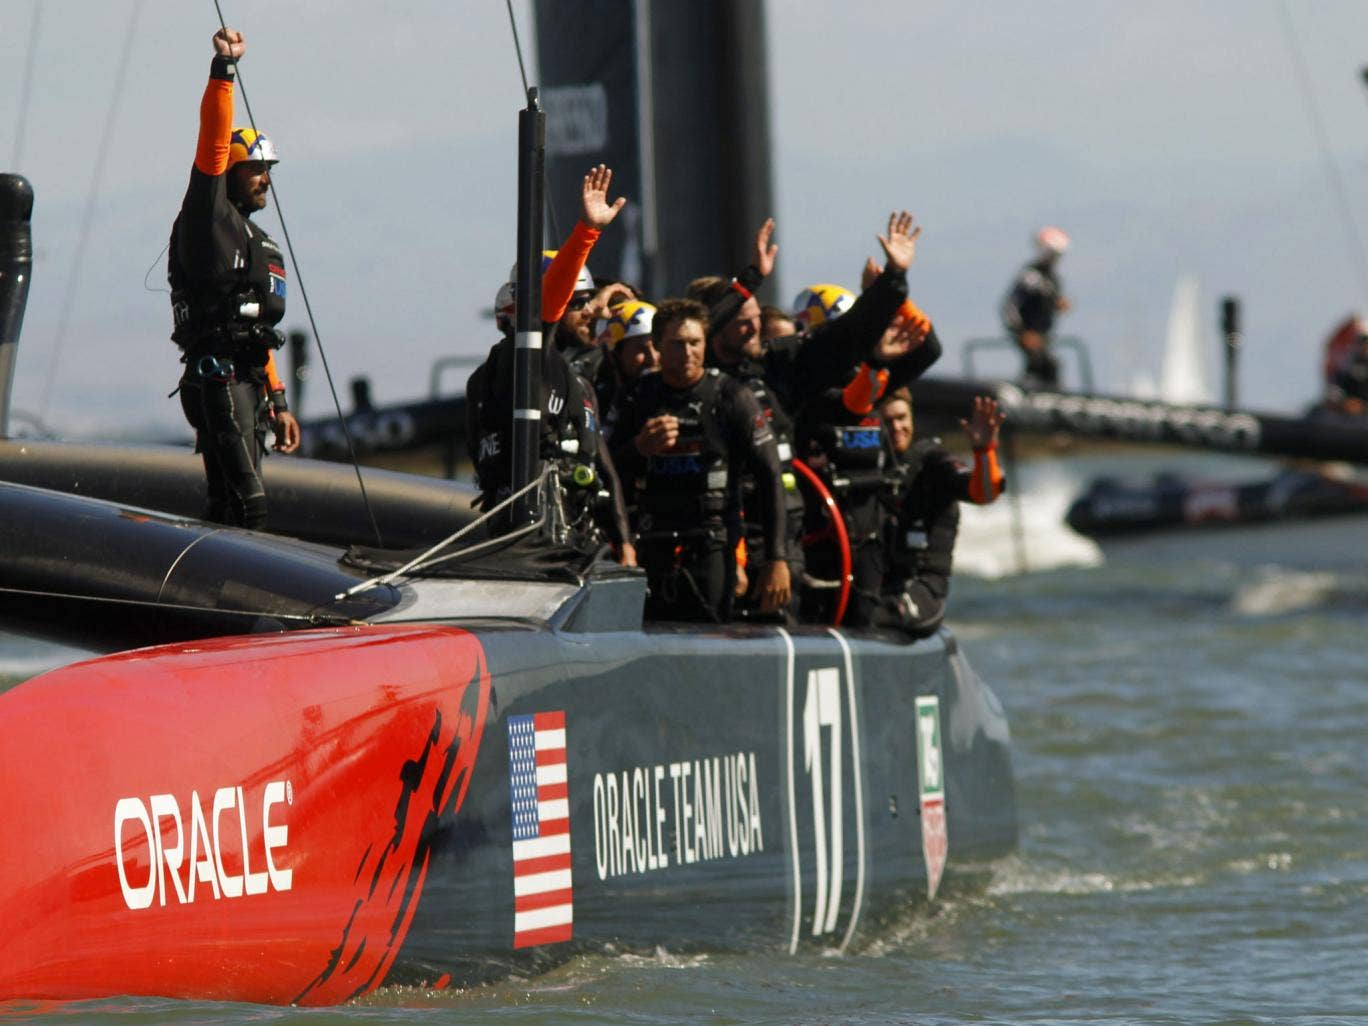 Crew members from Team USA wave to the crowd after defeating Emirates Team New Zealand during Race 15 in the 34th America's Cup yacht sailing race in San Francisco, California